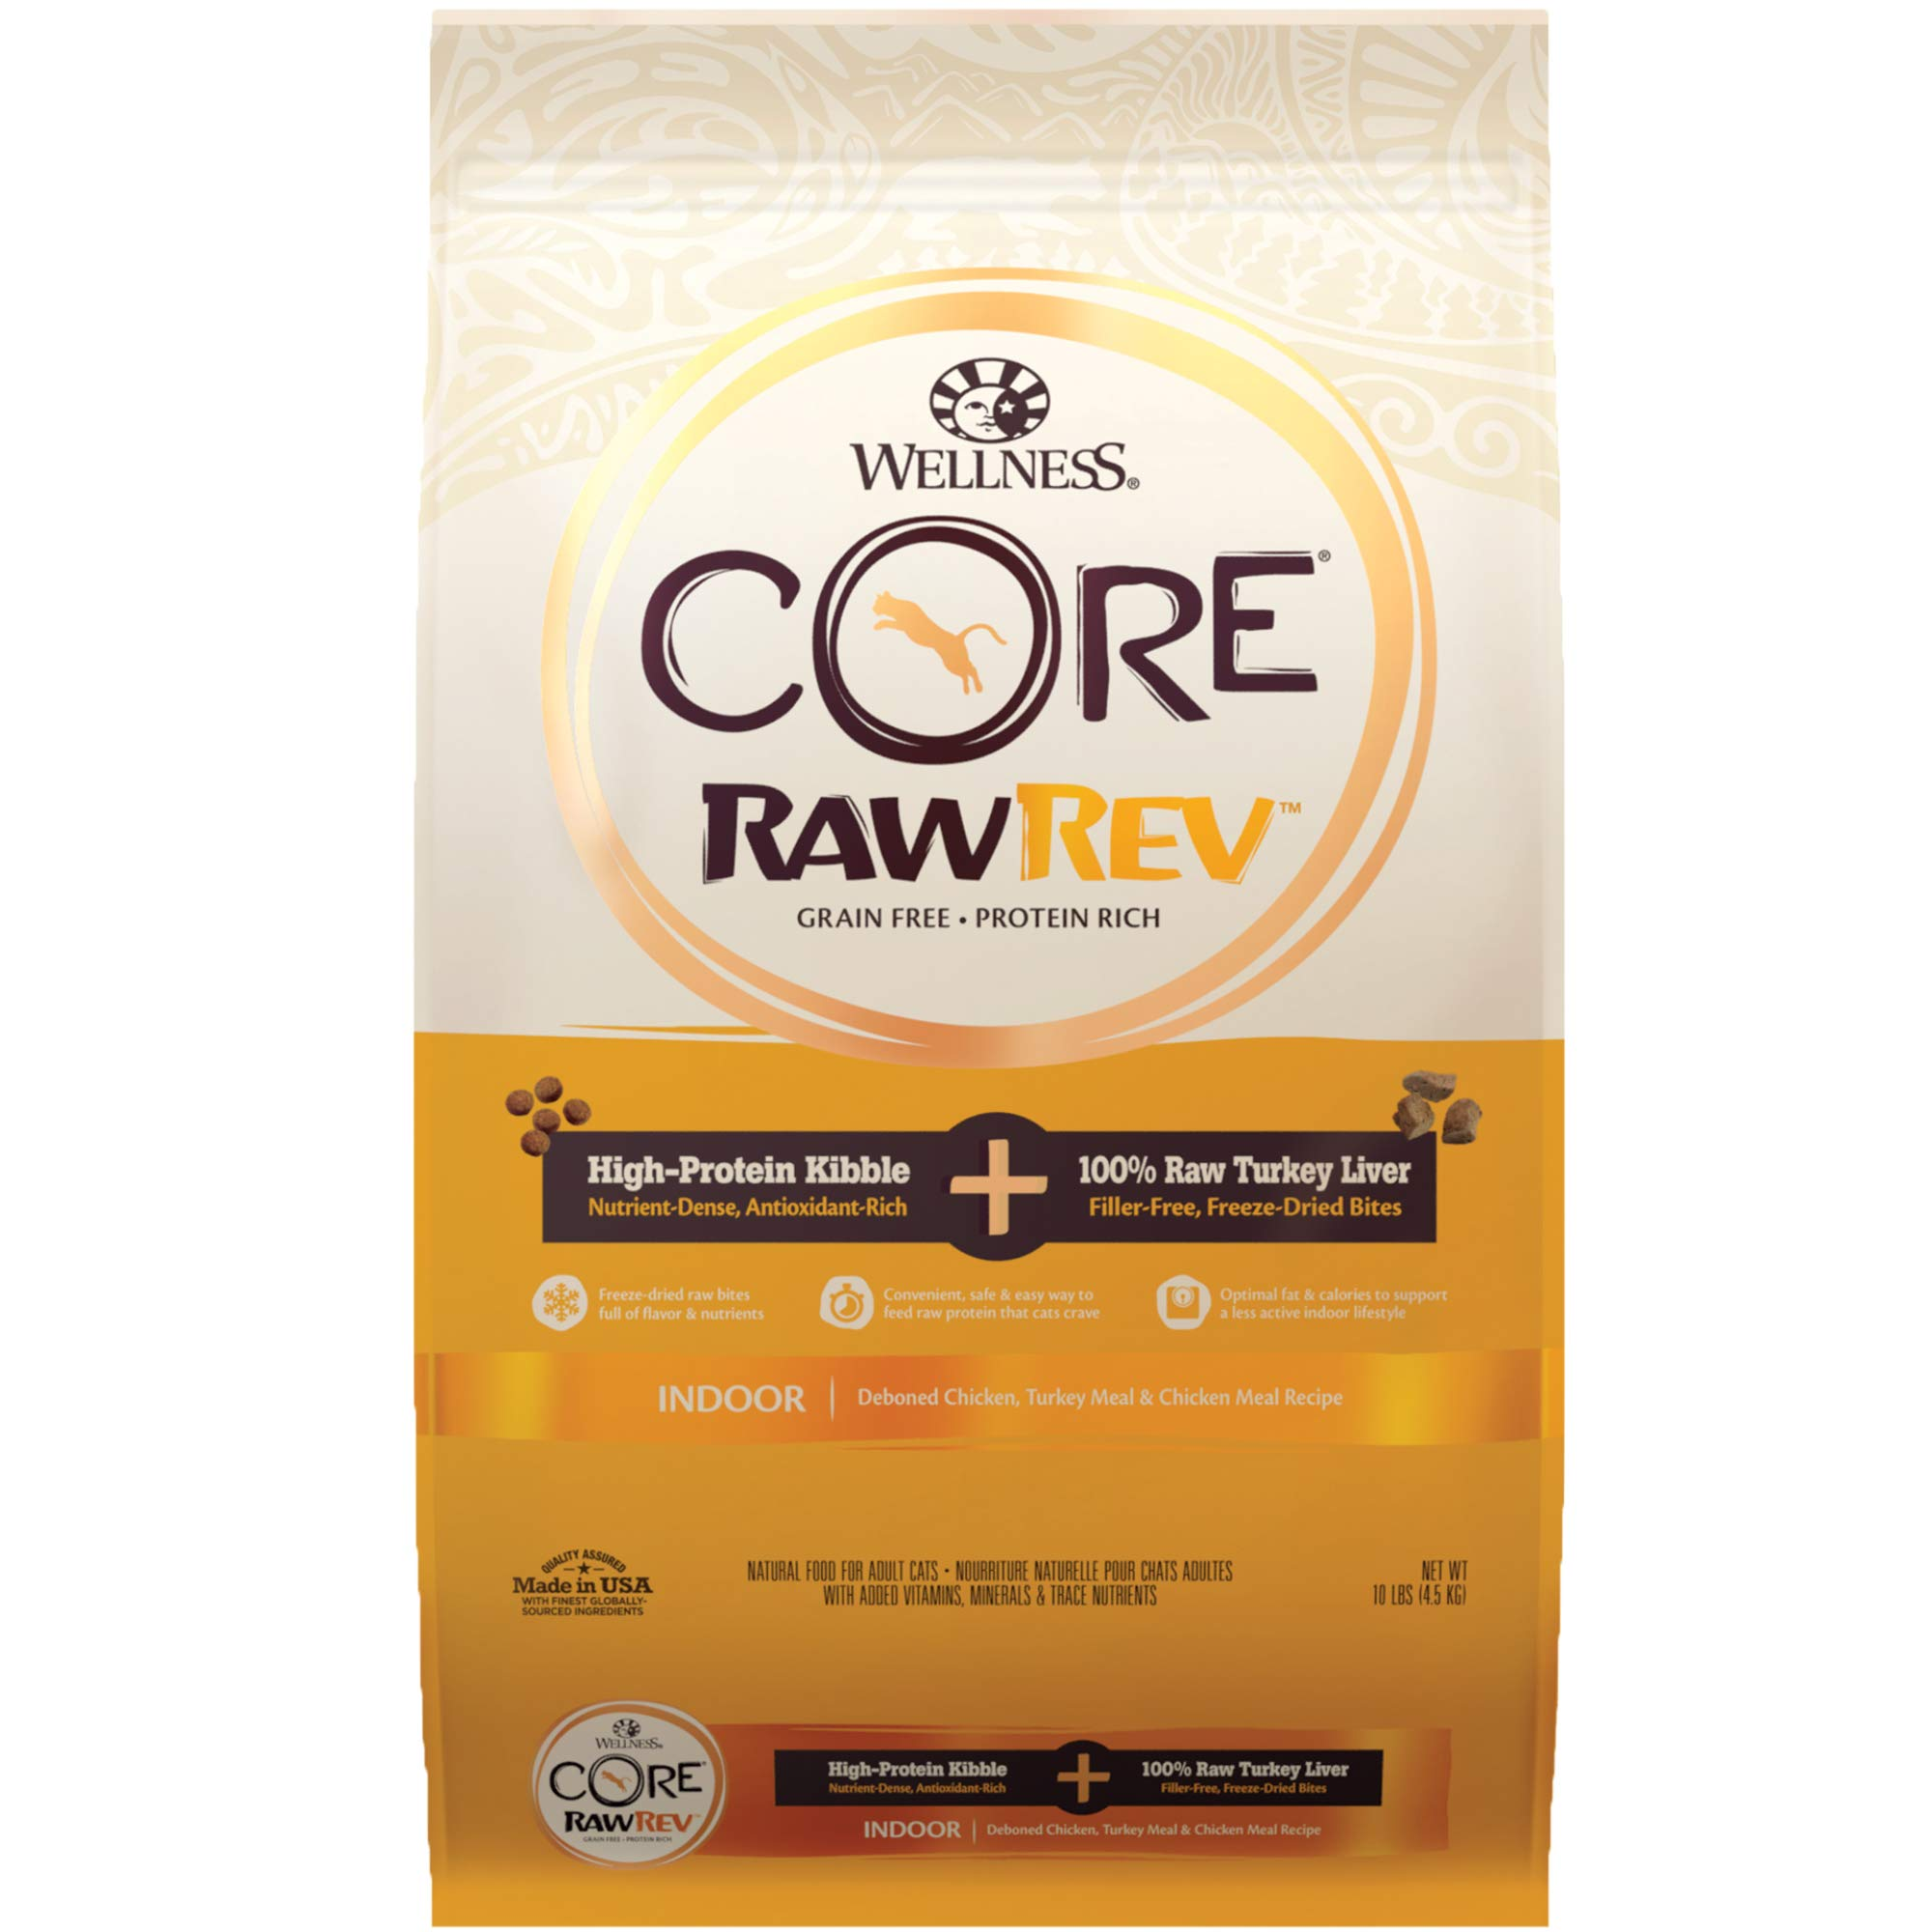 Wellness Core Rawrev Indoor Deboned Chicken, Turkey Meal & Chicken Meal Recipe, 10 lb Bag by Wellness Natural Pet Food